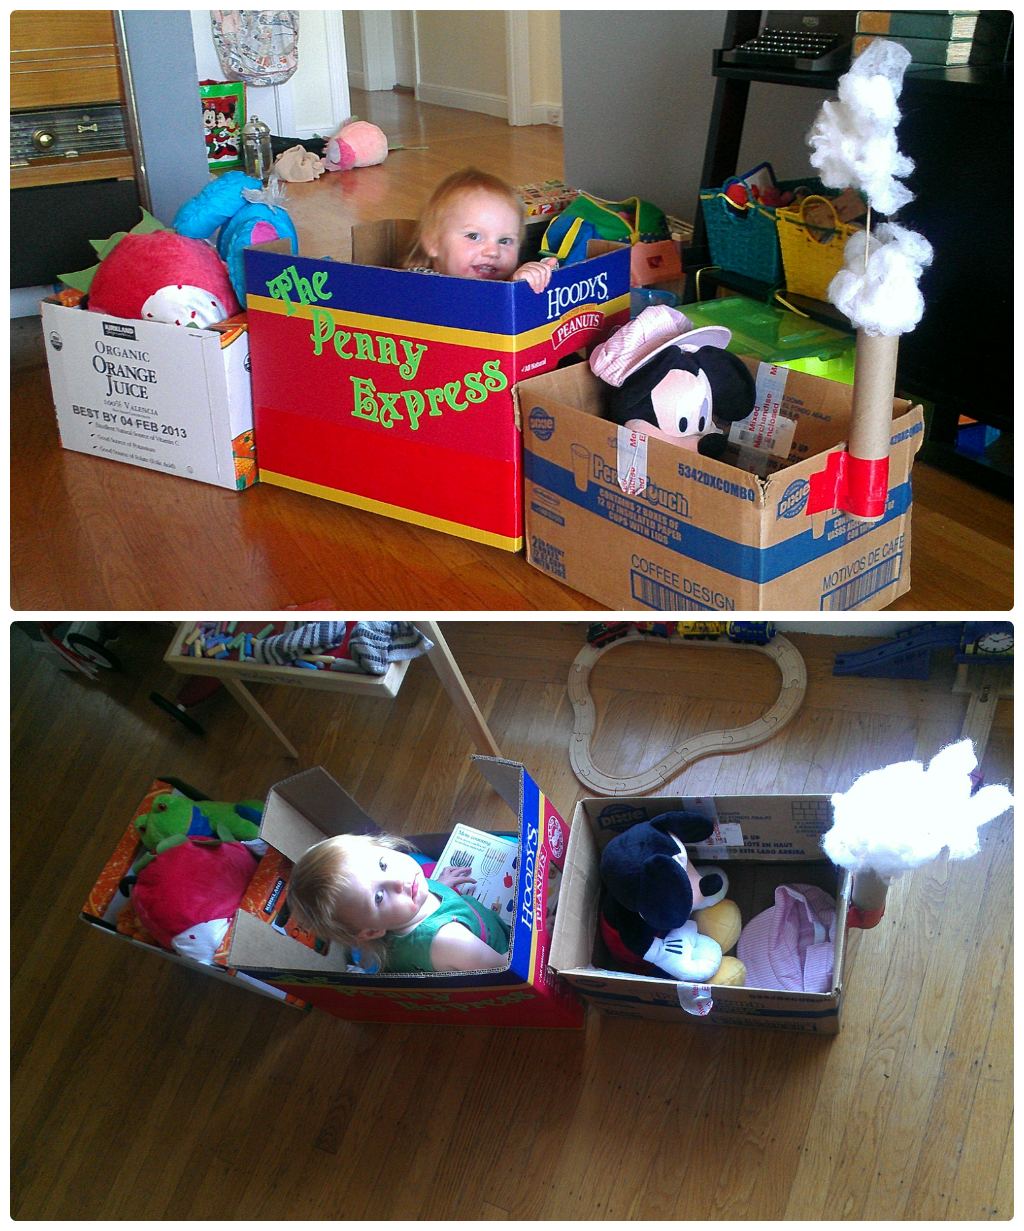 Creative Cardboard Play – Favorite DIYs of 2013